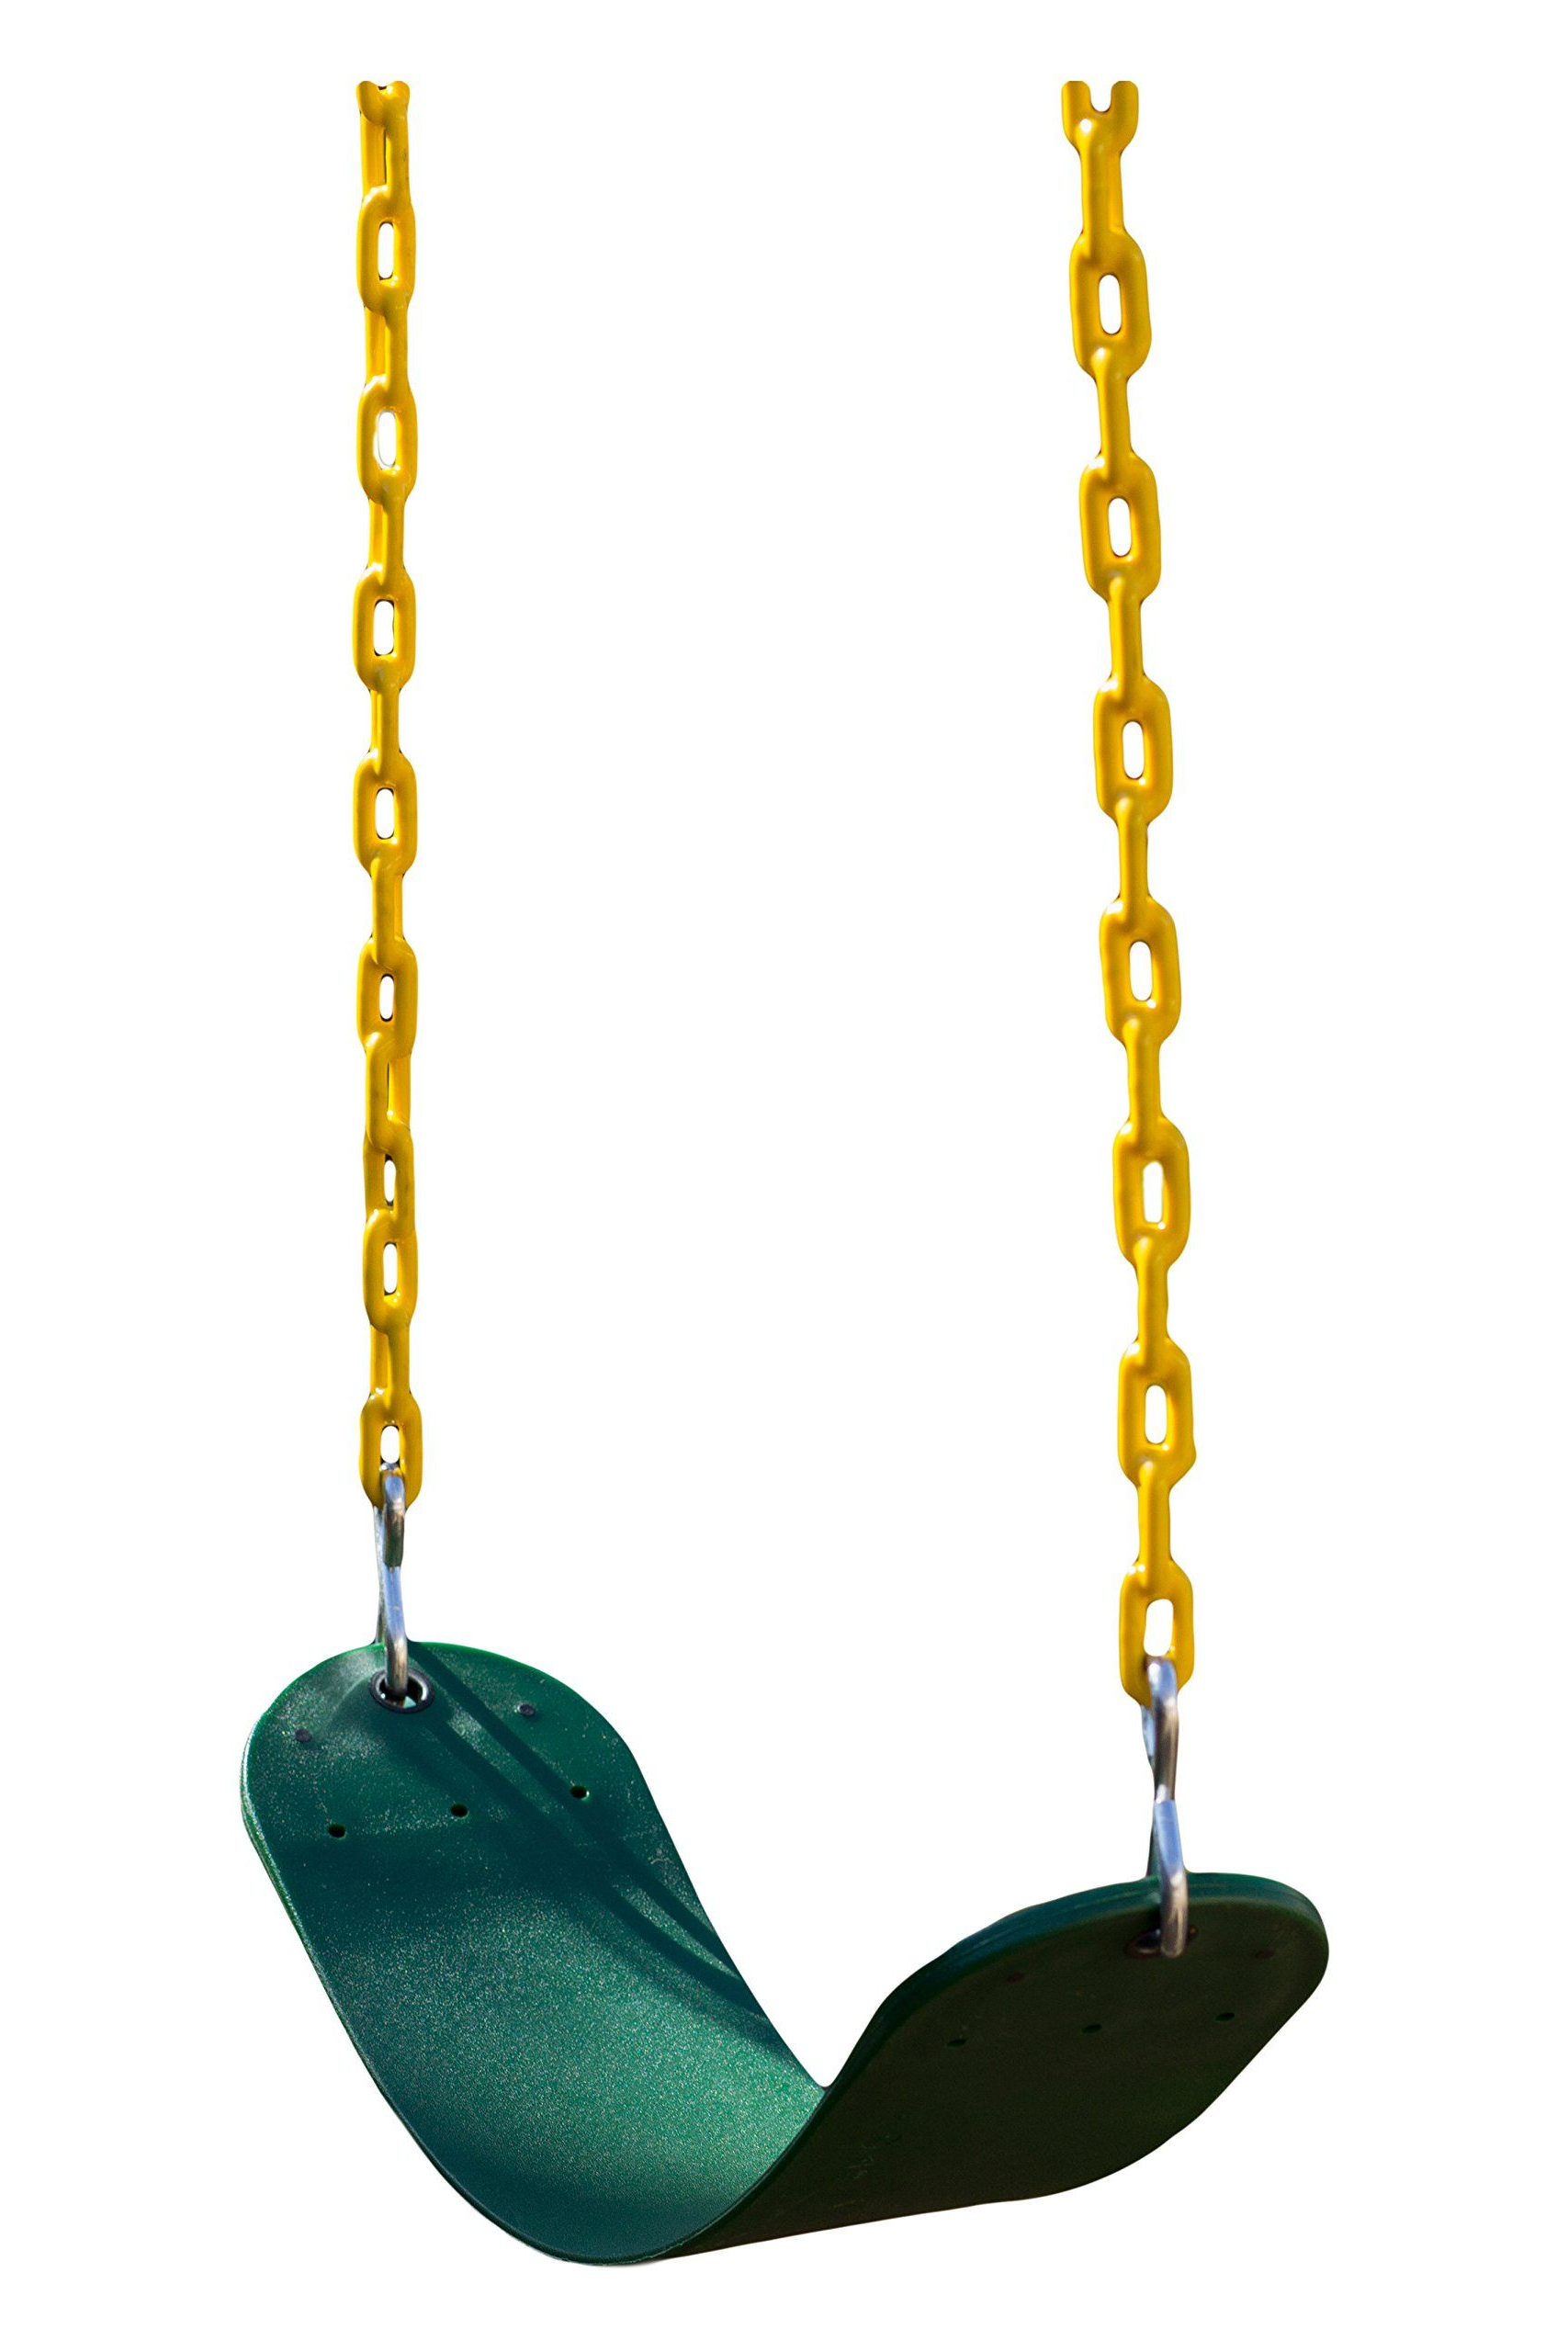 2020 Pin On Swings, Toys & Games In Swing Seats With Chains (View 1 of 30)